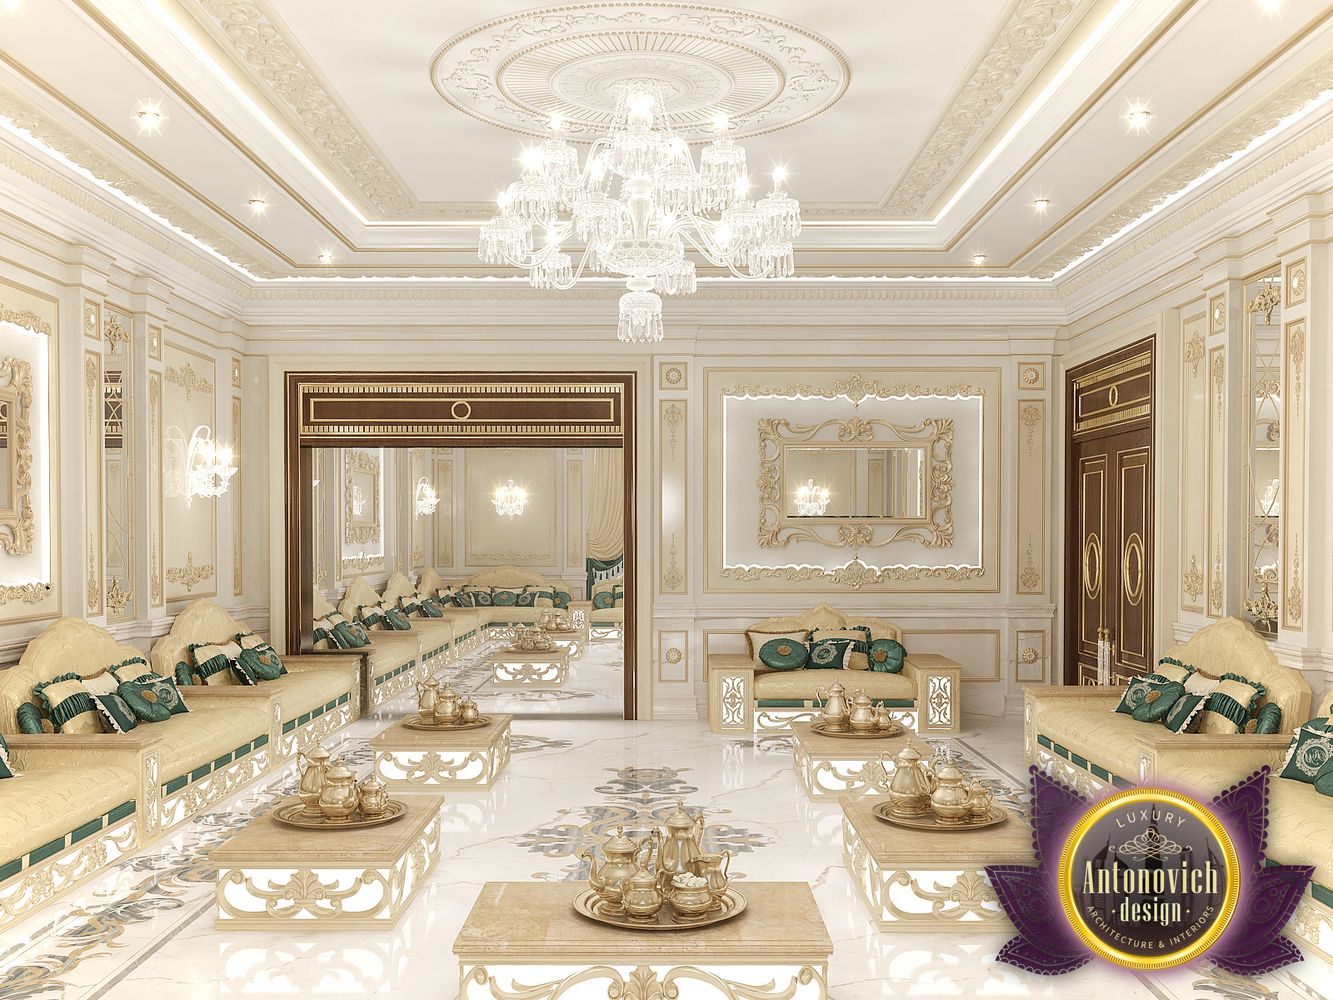 Nigeiradesign arabic majlis interior design from luxury for Arabic interiors decoration